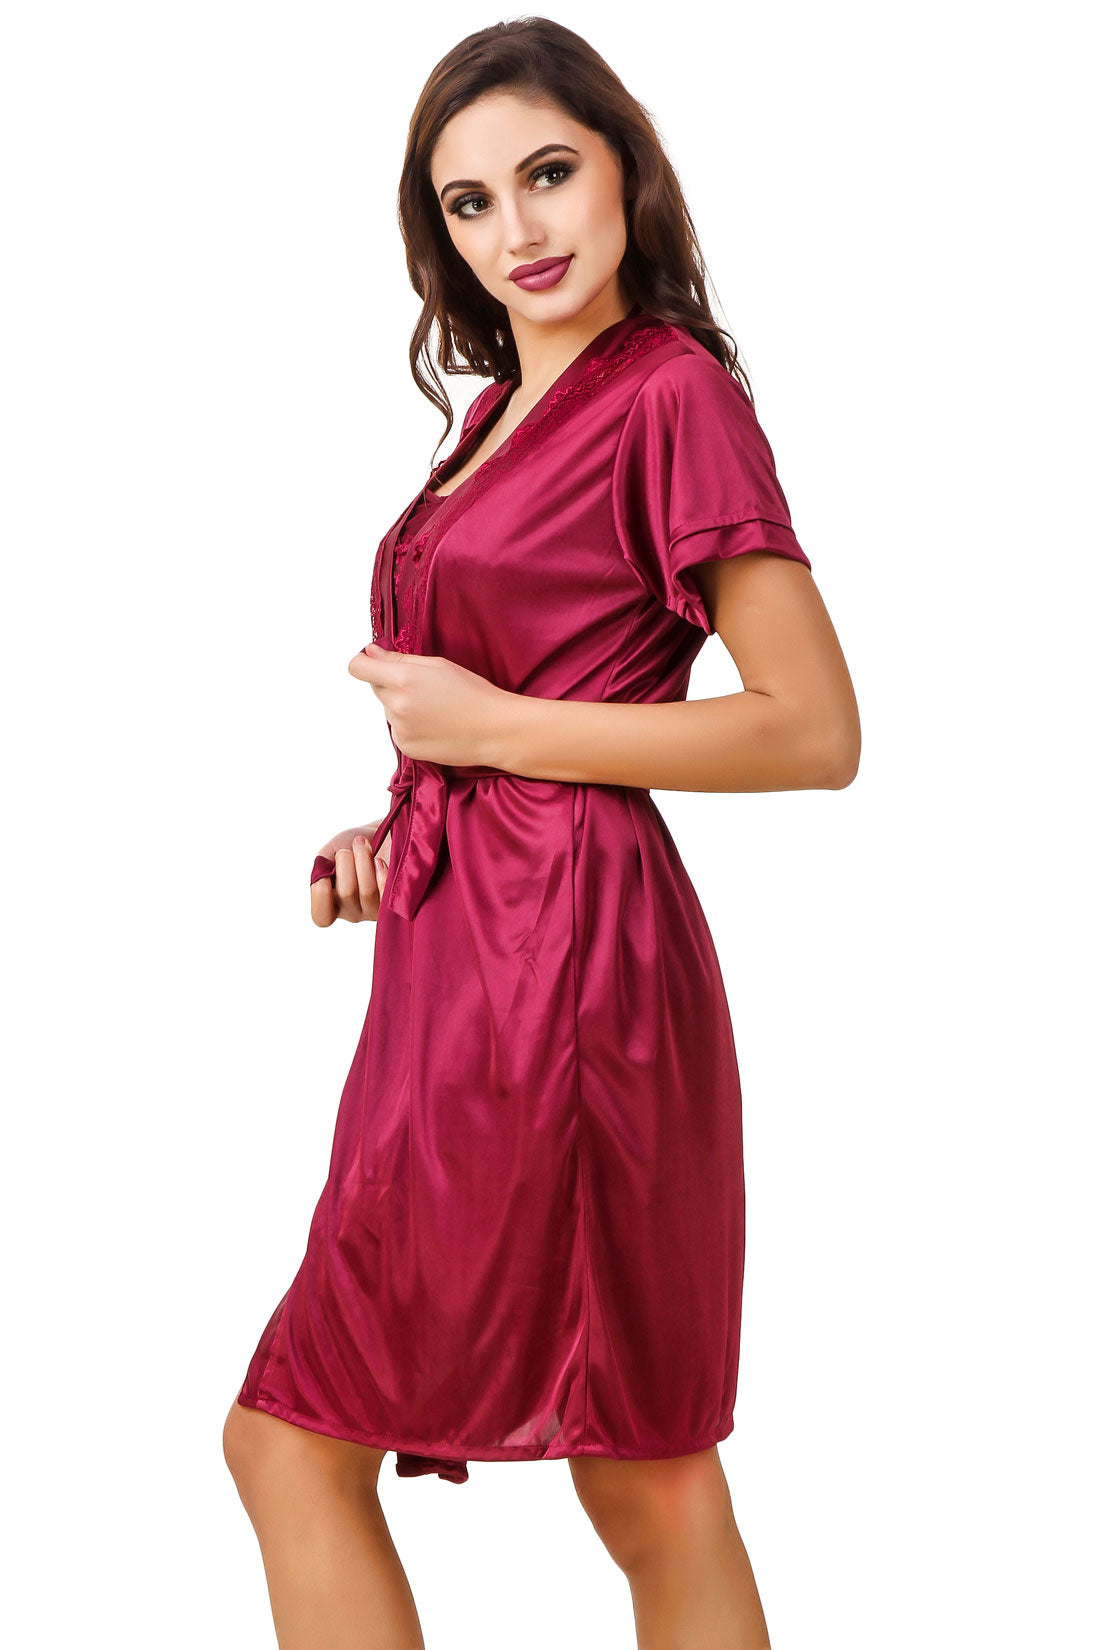 Fasense Satin Solid 2 Pc Set of Nighty   Wrap Gown-By Fasense ab47d770c